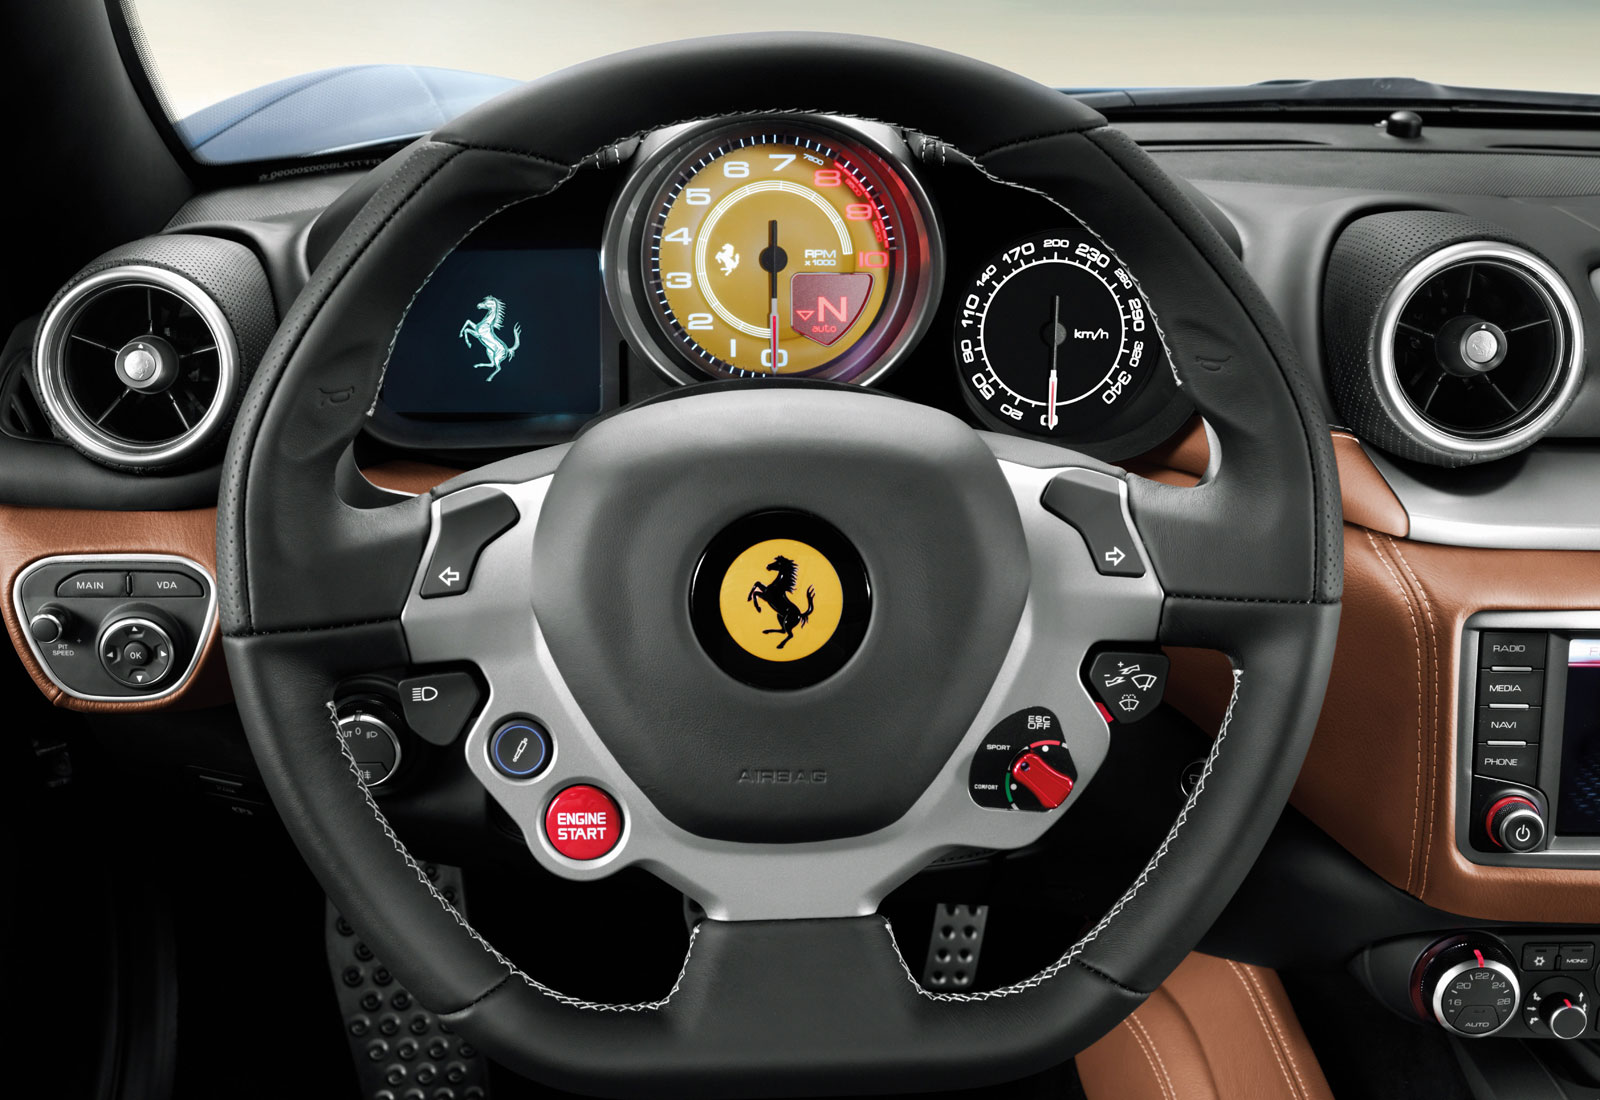 Ferrari California T Interior - Steering Wheel - Car Body Design